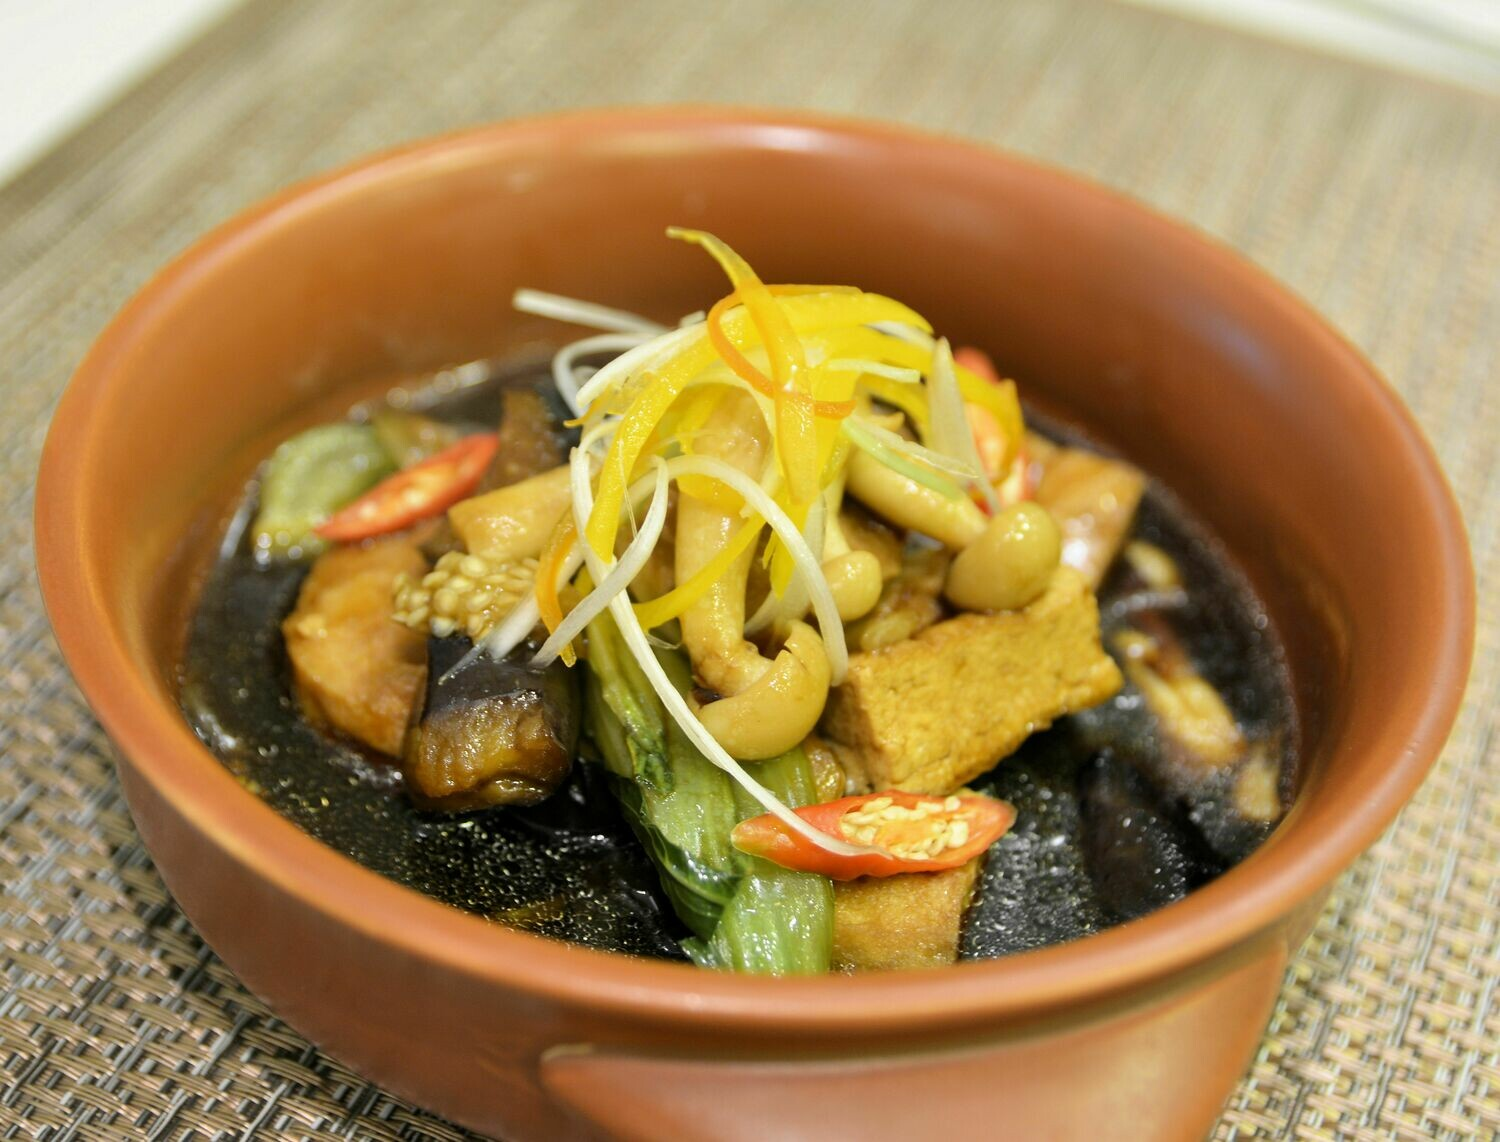 (Dau Om Ca Tim) Tofu & Eggplant in Clay Pot with Rice